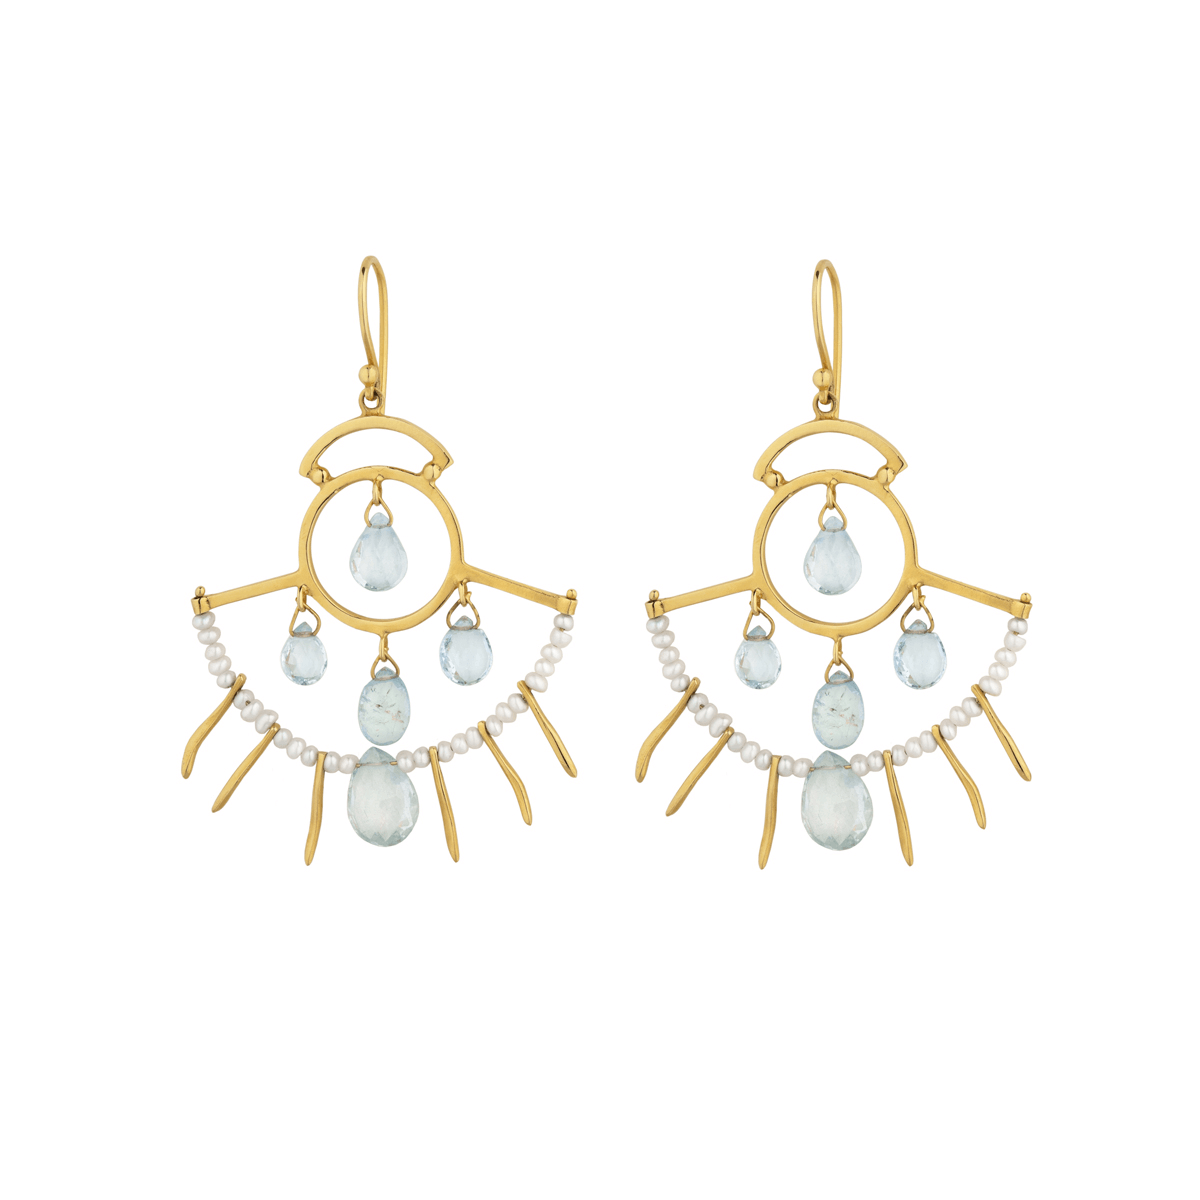 VE001 - Rain Earrings